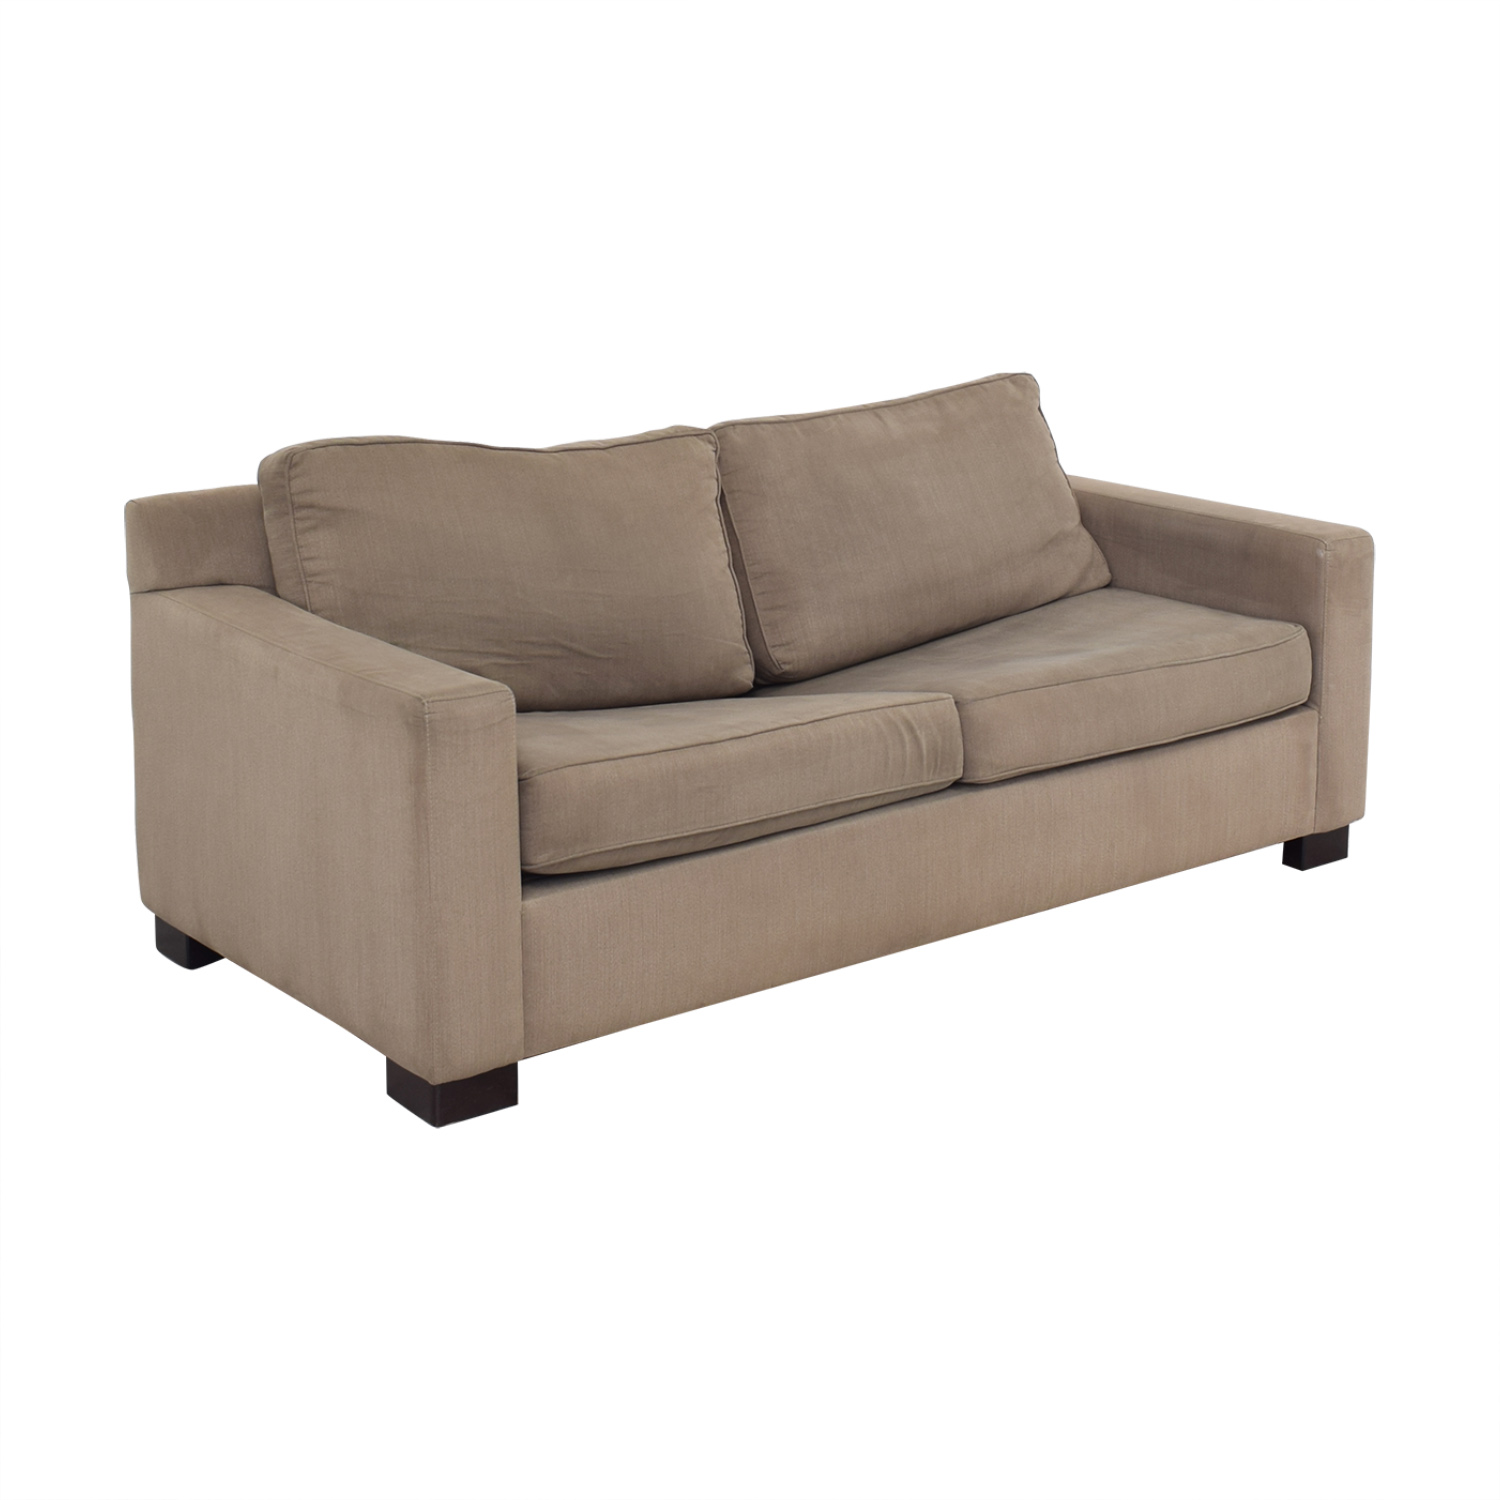 shop Urban Barn Apartment Sleeper Sofa & Ottoman Urban Barn Sofa Beds